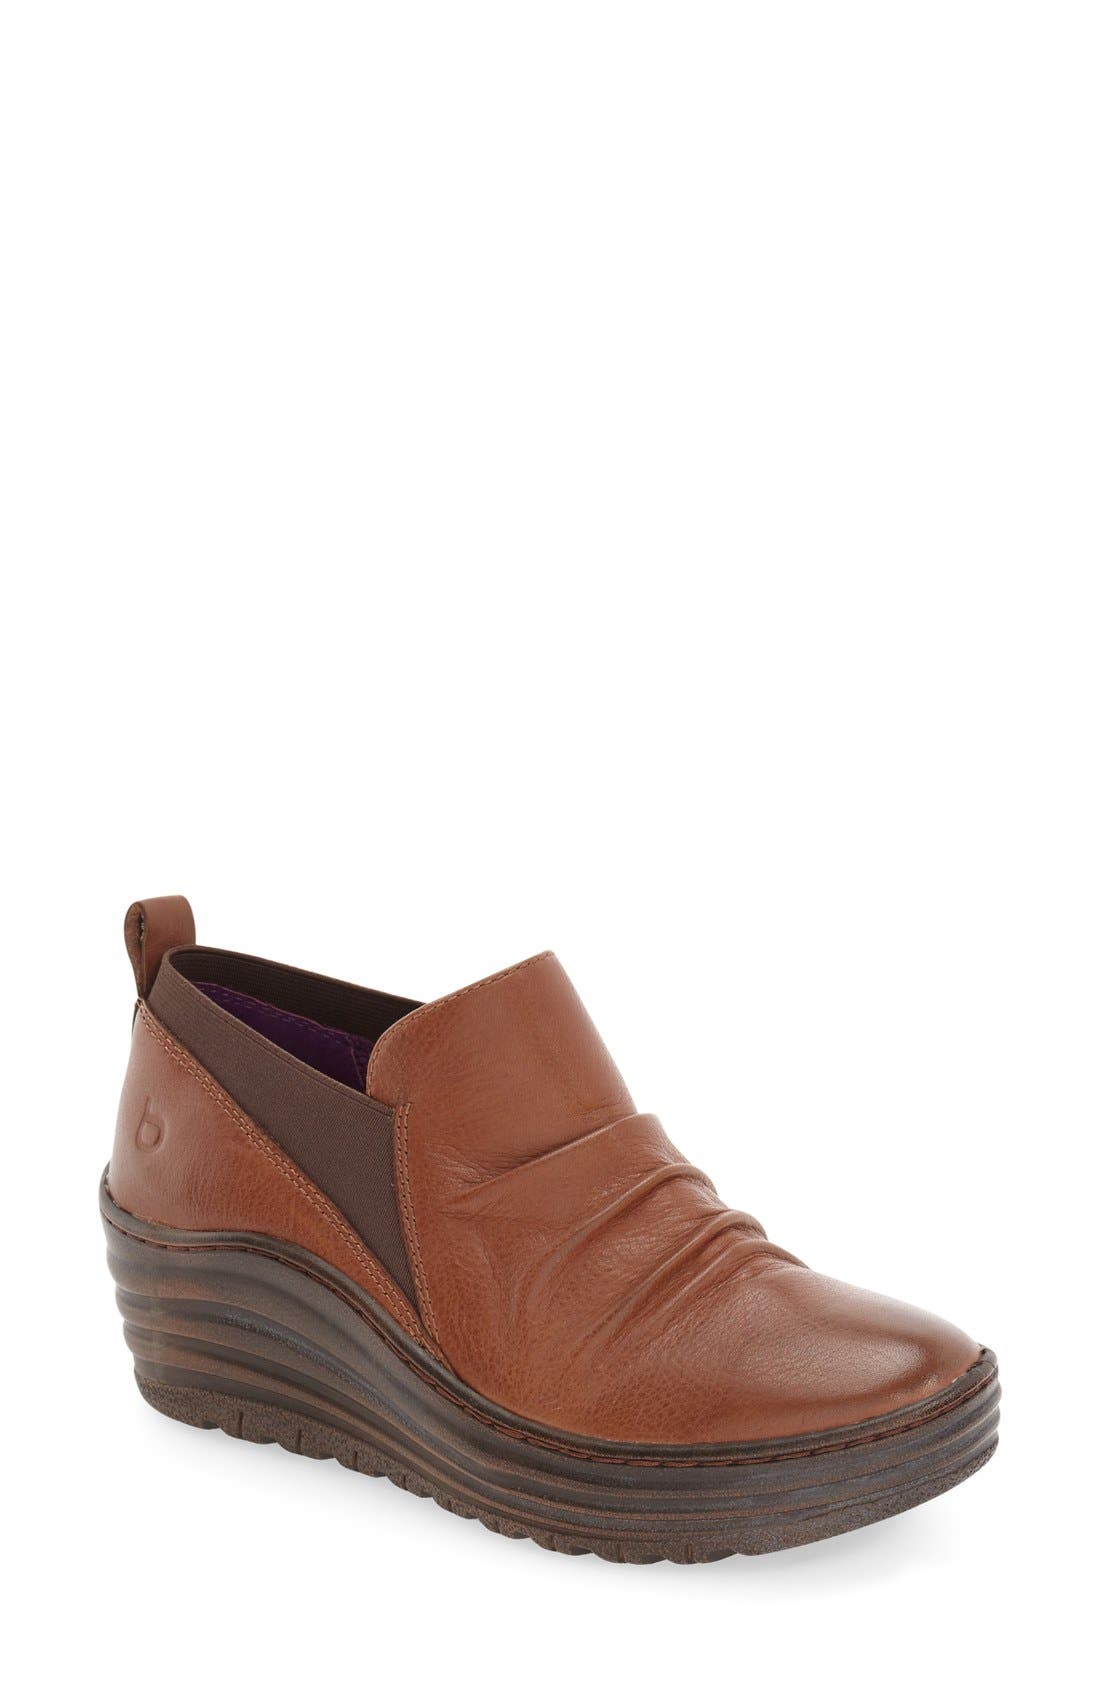 'Gallant' Leather Bootie,                         Main,                         color, PINECONE LEATHER